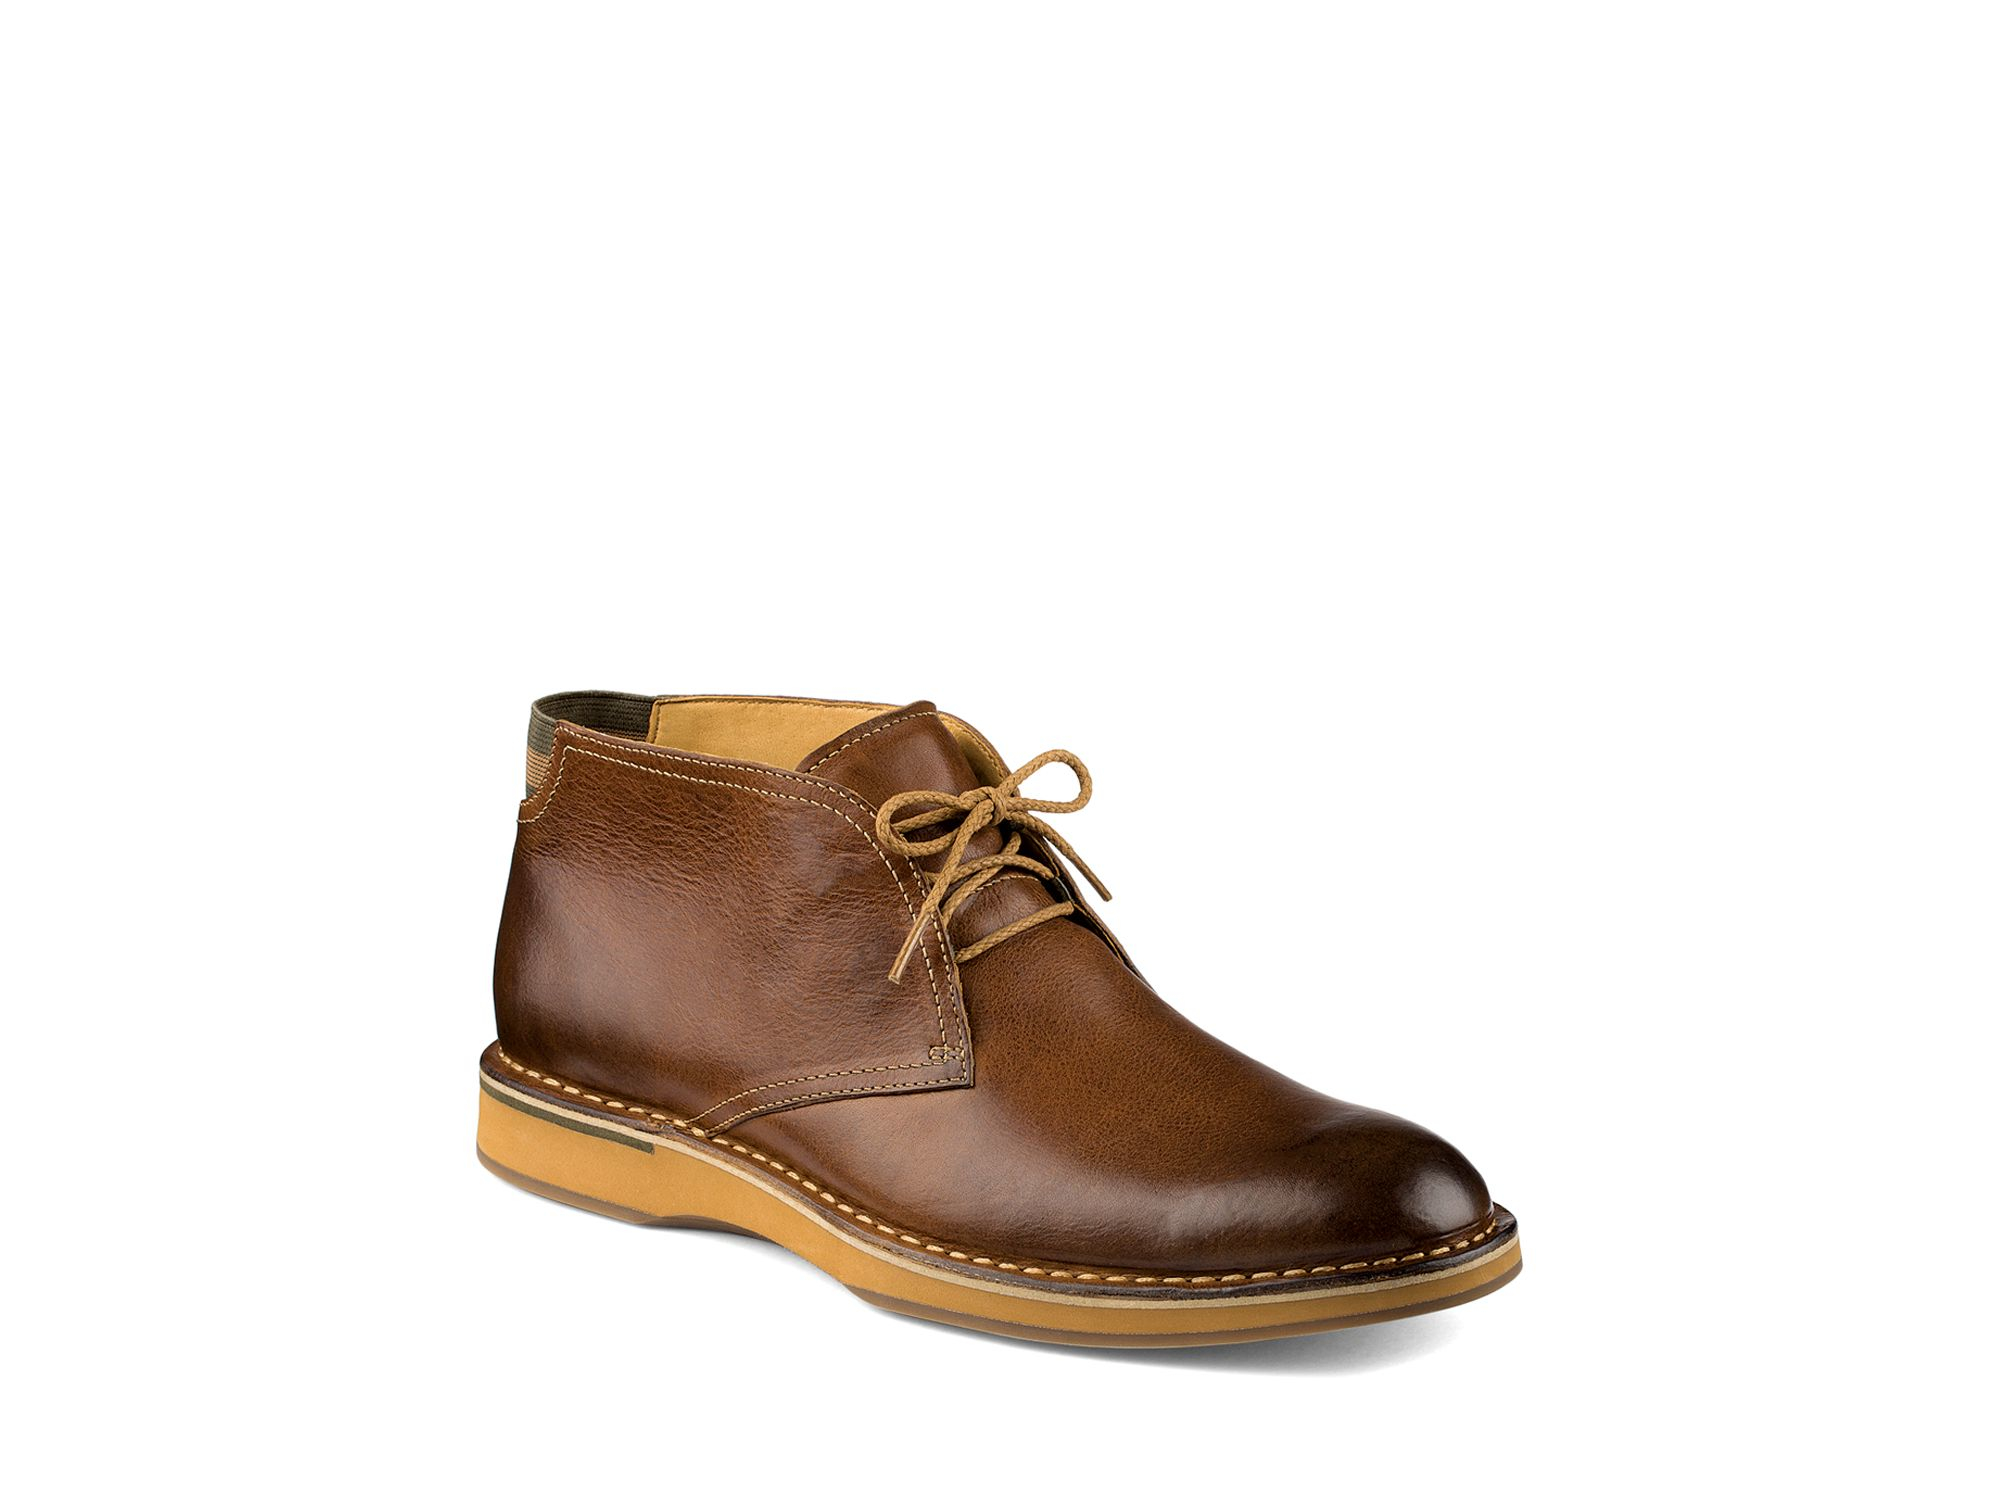 Model Sperry Top Sider For J.Crew Leather And Wool Chukka Shoes Boots 13 $140 NEW | EBay